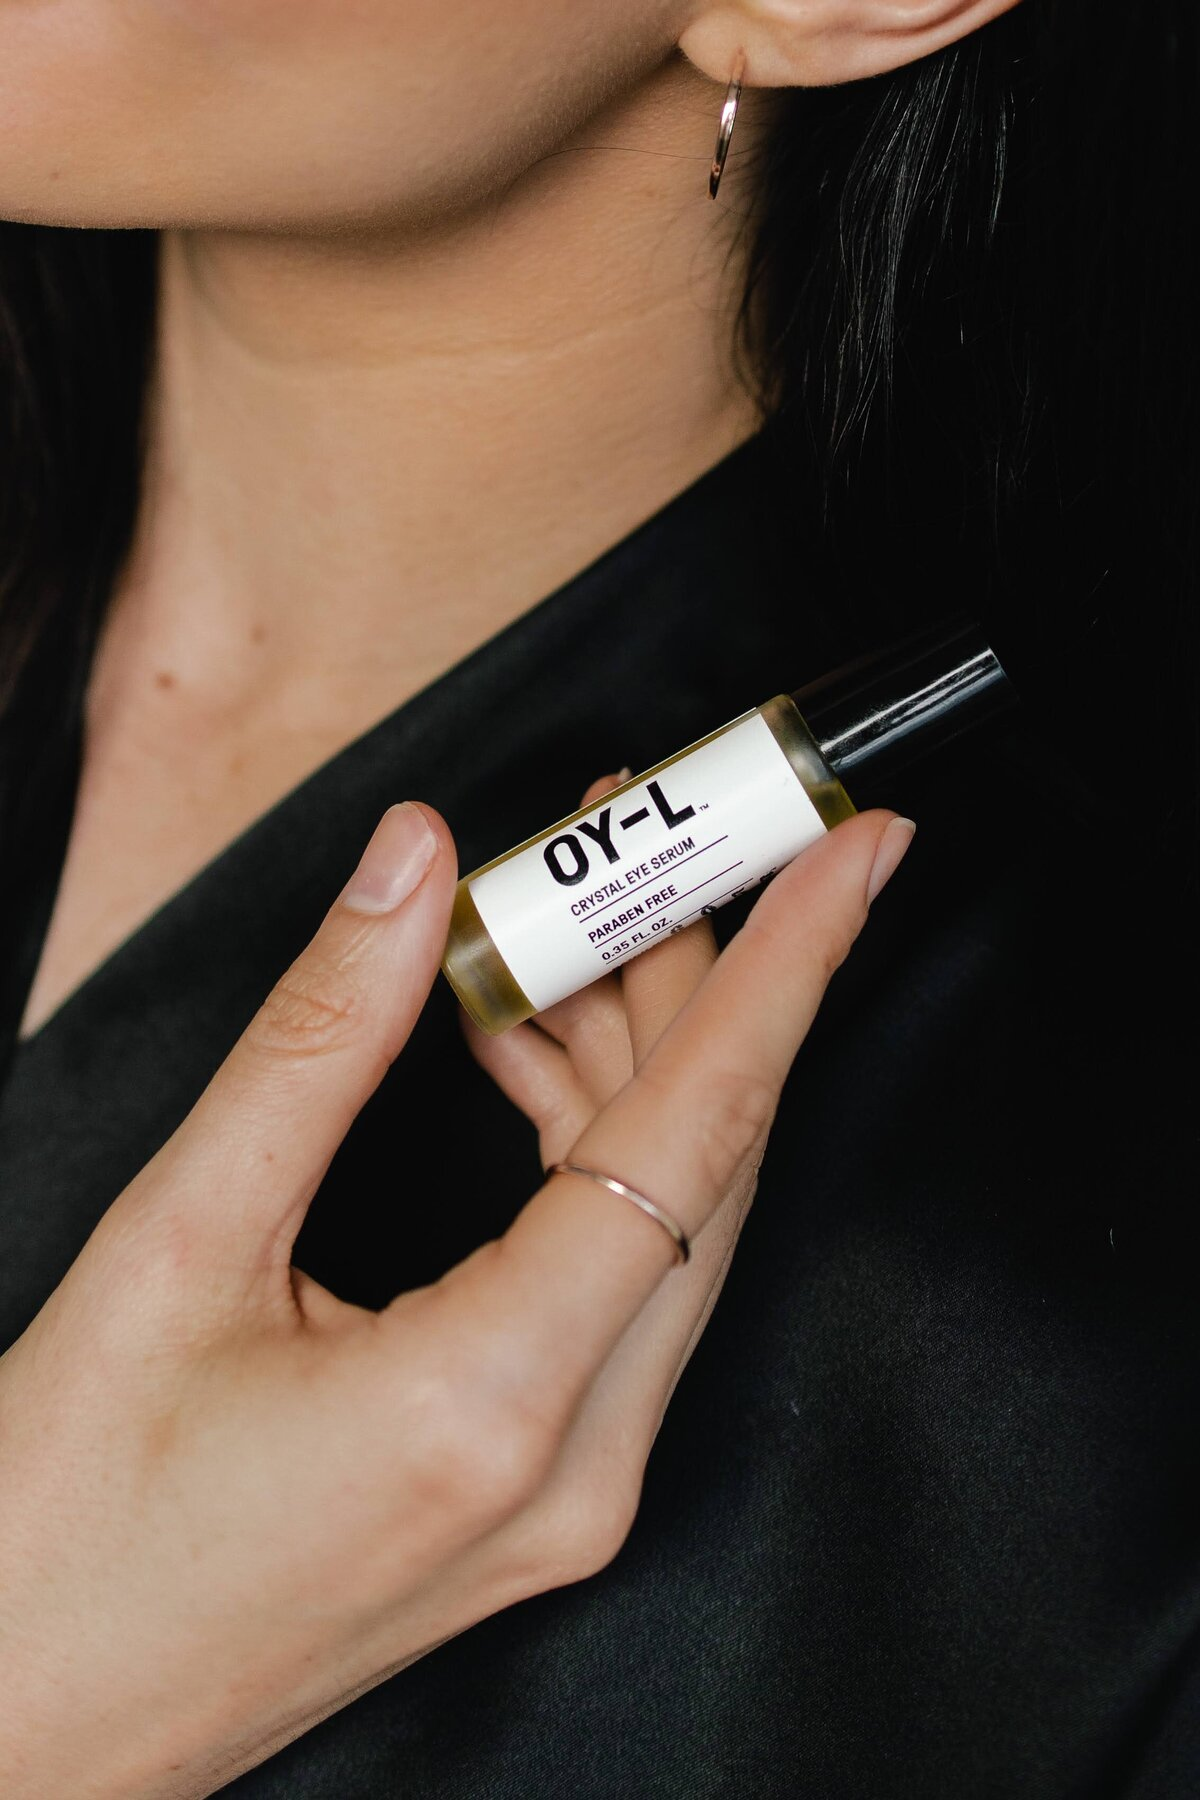 OY-L Crystal Eye Serum Review by Clean Beauty Blogger Alex Perry